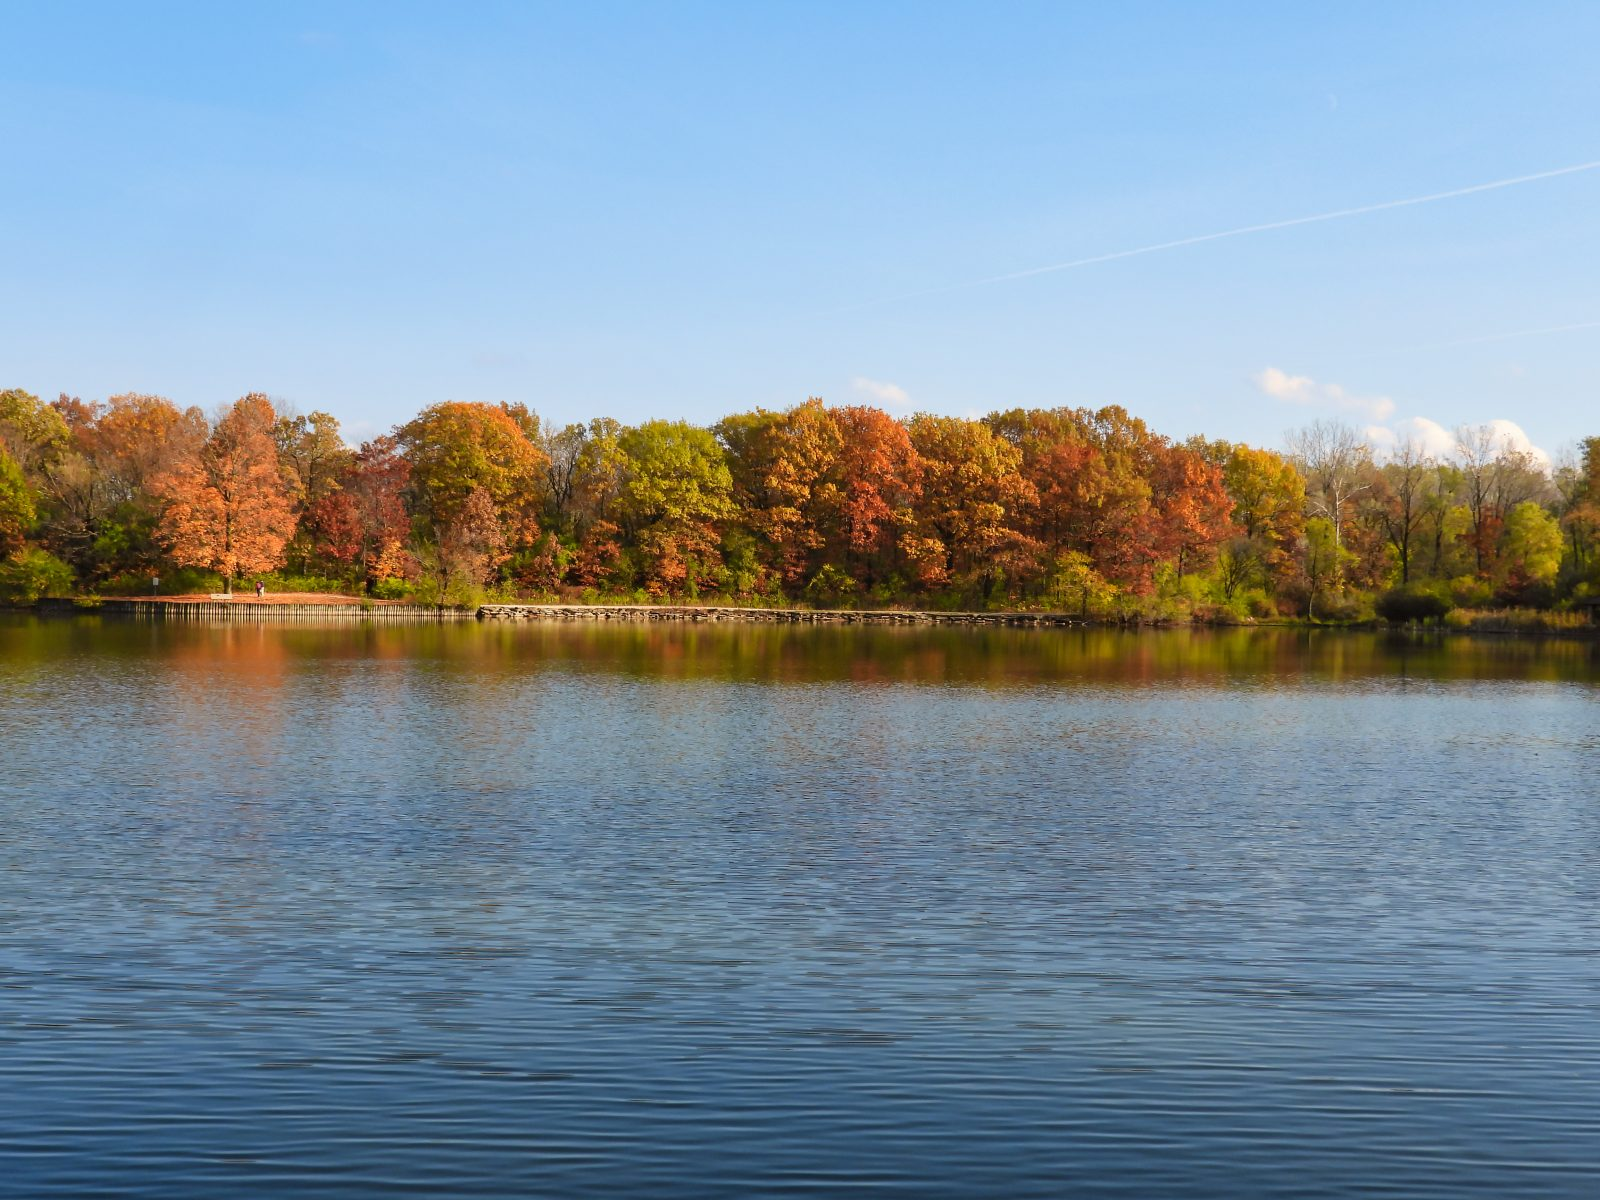 Fall Landscape View At Lake Brilliant Autumn Colored Trees with Red, Yellow, Brown, Orange Tree Leaves Reflected in Water on Bright October Day with Bright Blue Sky